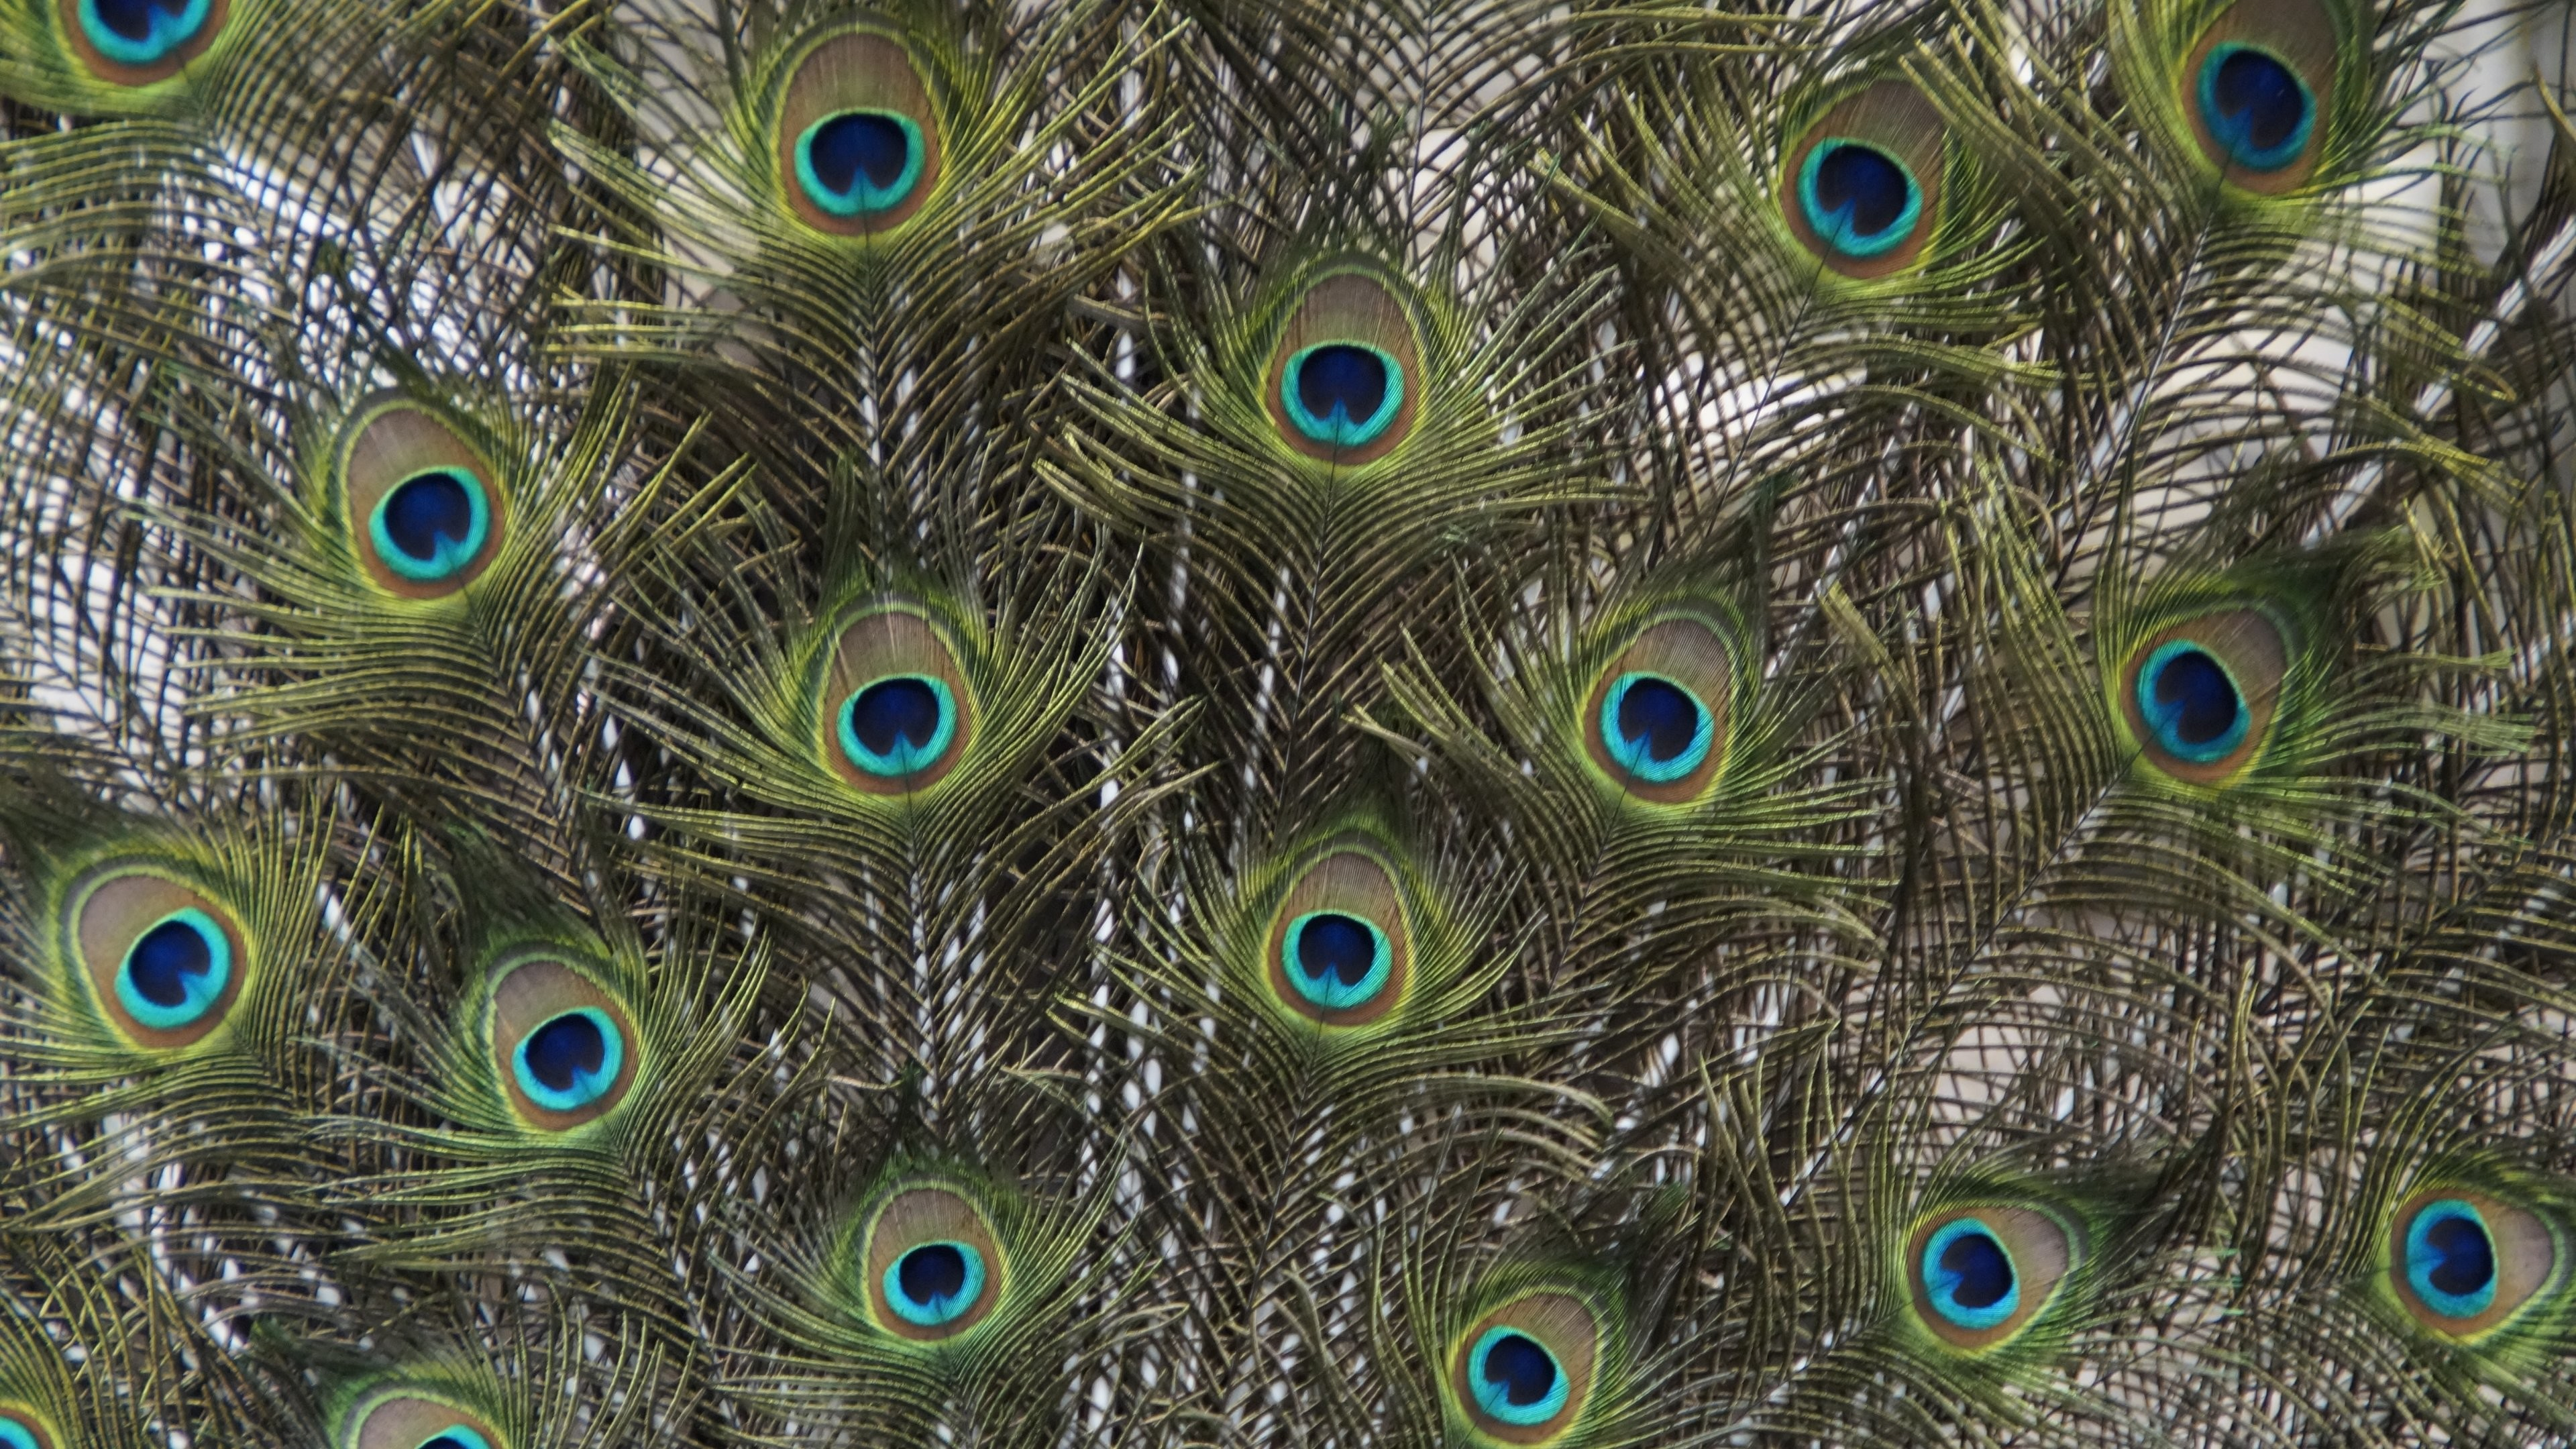 3840x2160 Peacock Feathers